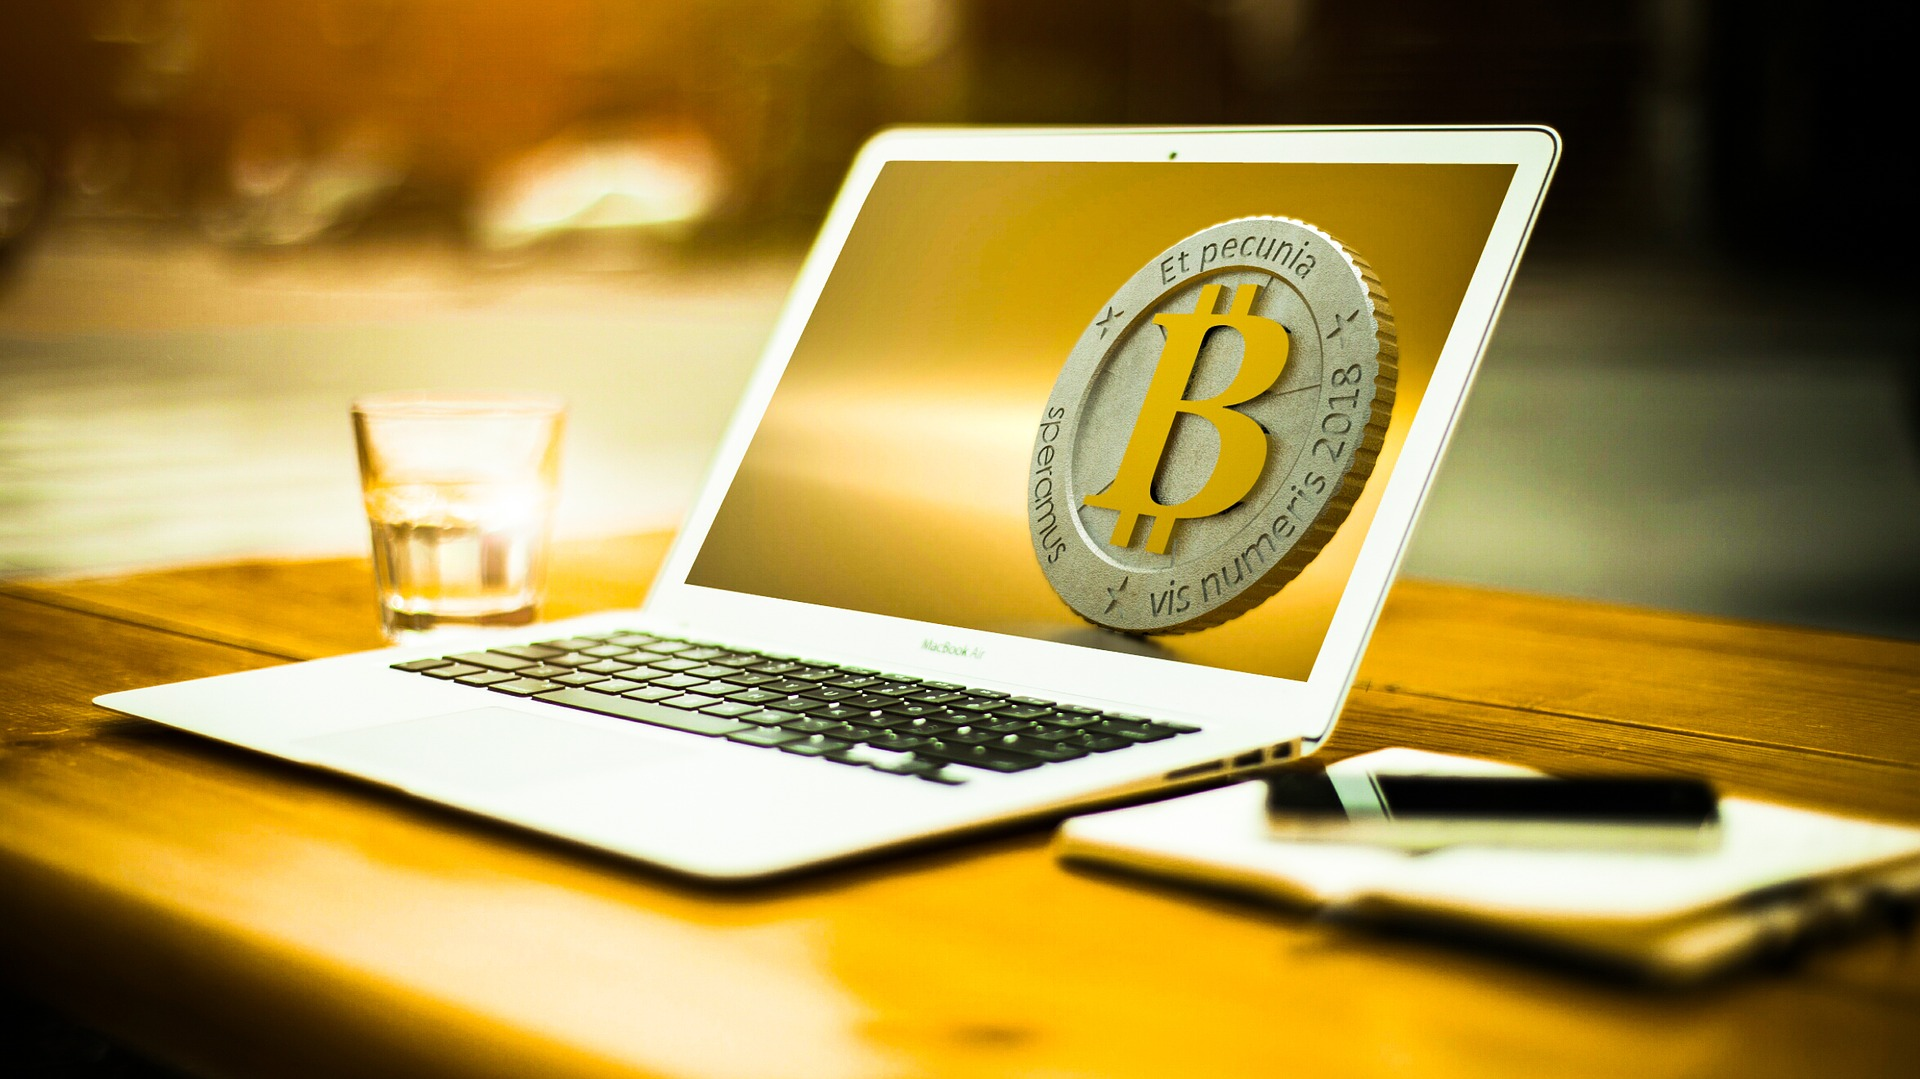 Why Bitcoin Values Fluctuate So Much?